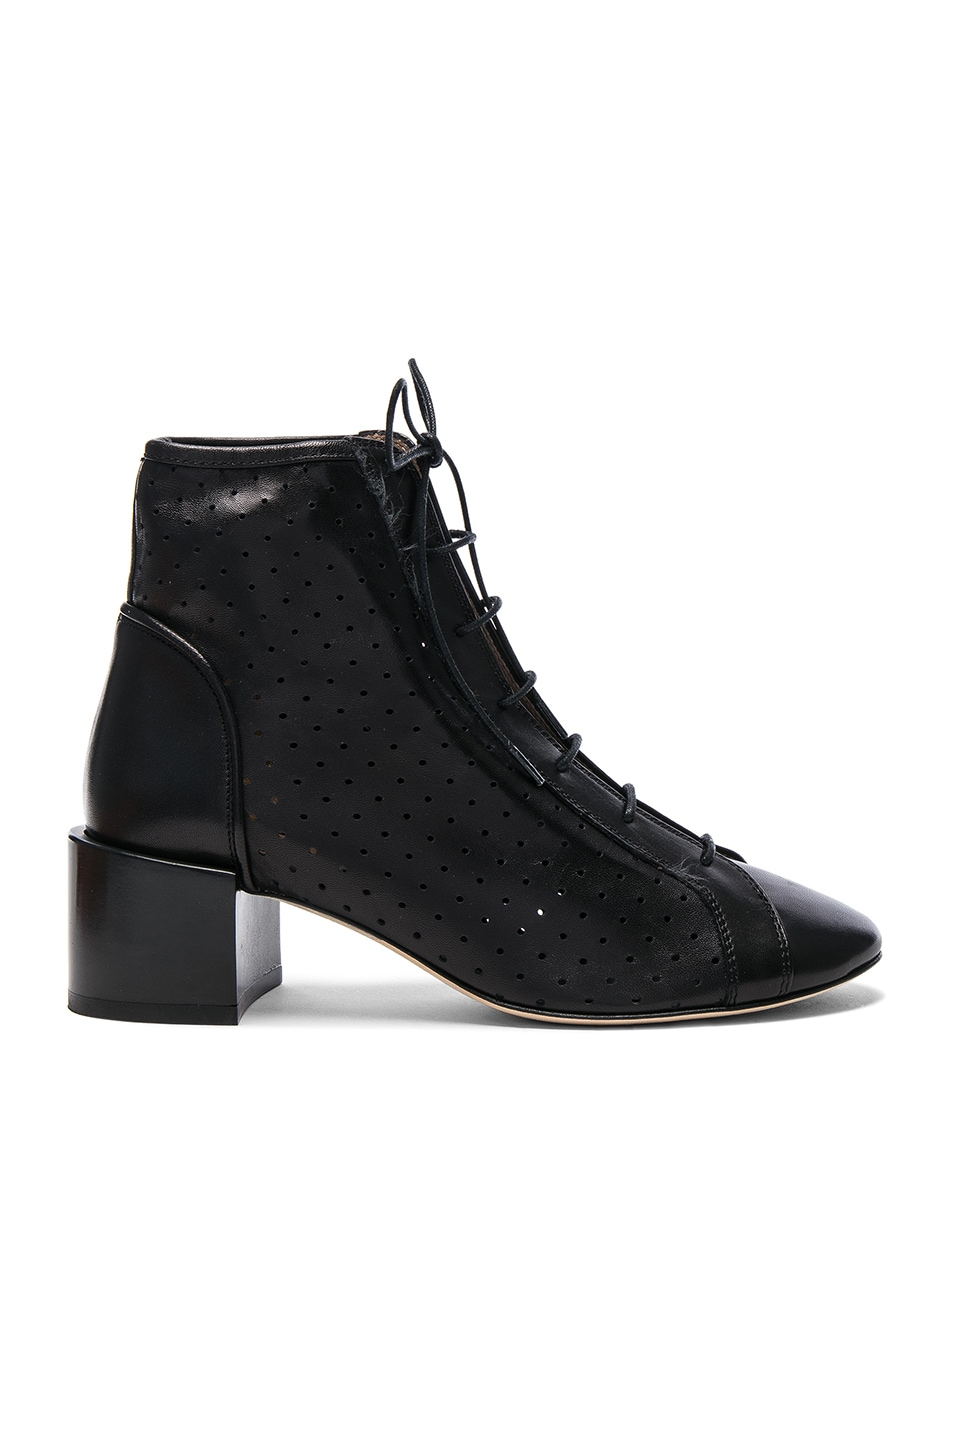 Image 1 of Acne Studios Leather Mable Booties in Black